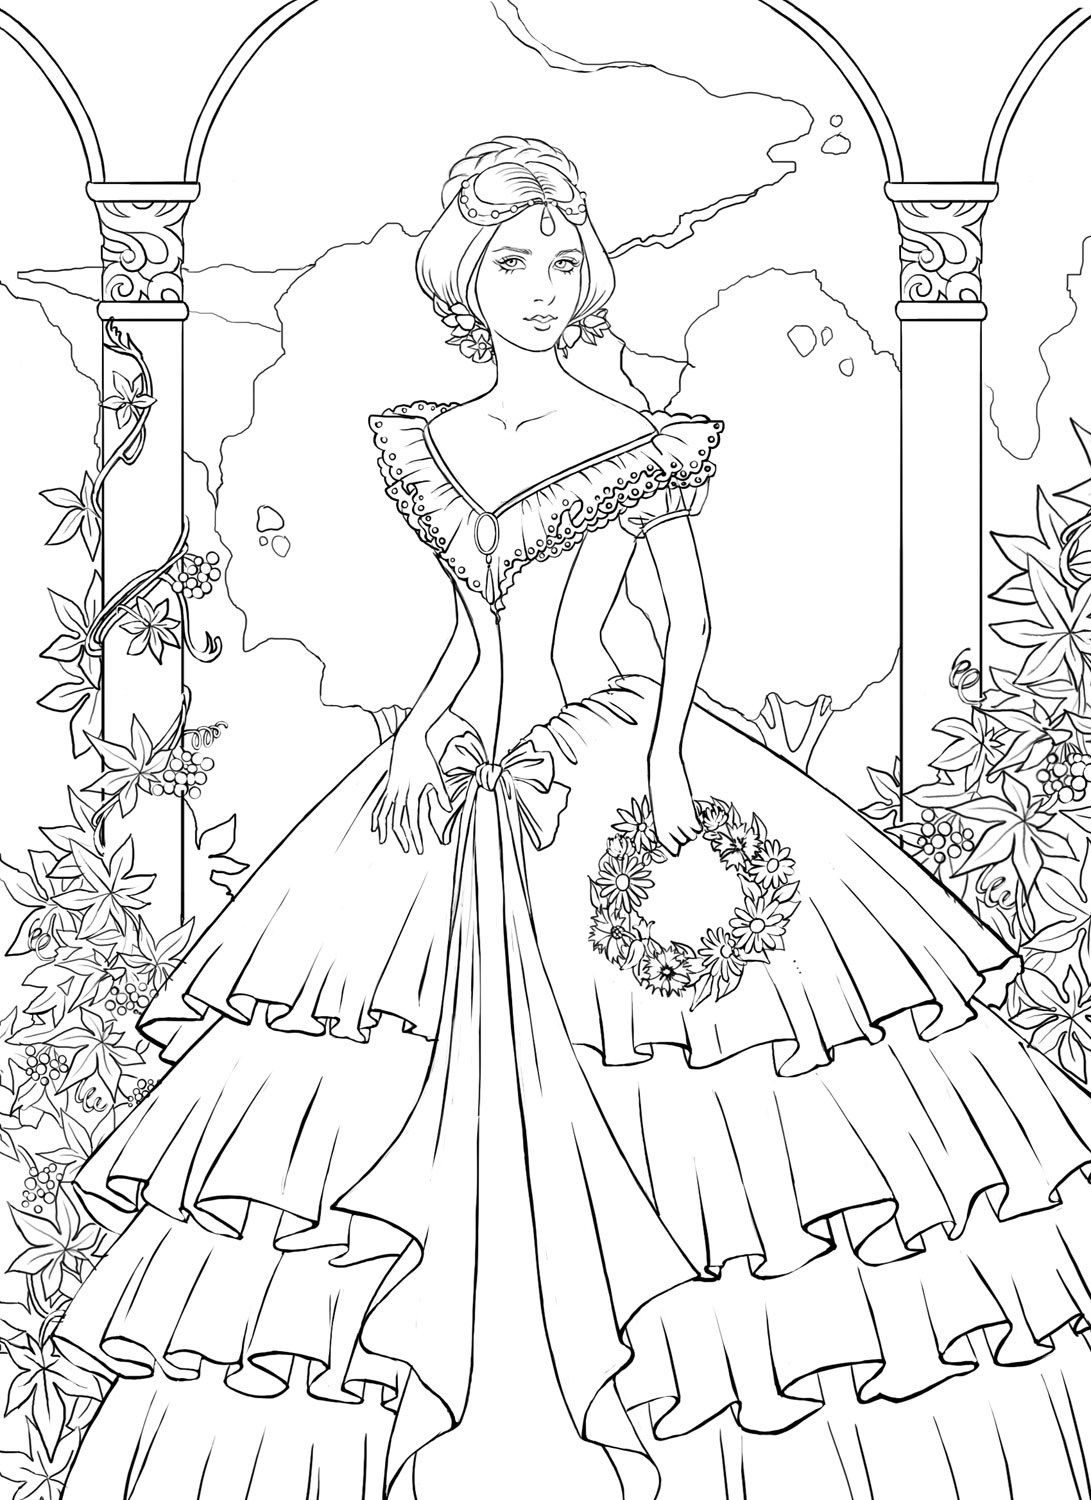 Detailed Landscape Coloring Pages For Adults 32